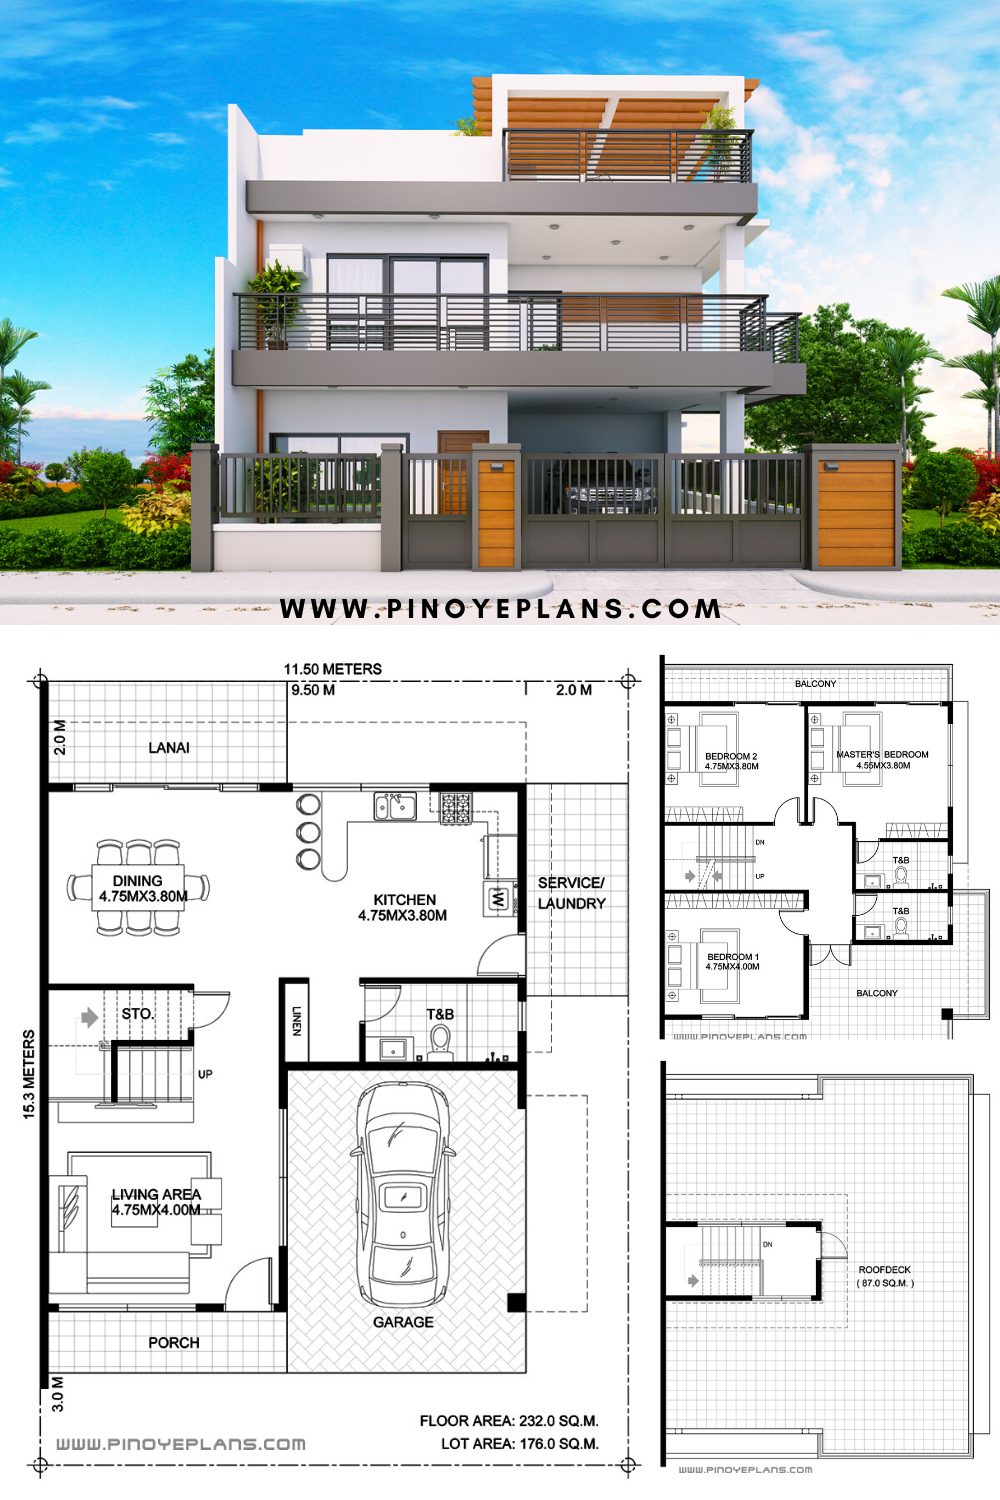 Pin On 3 Bedroom House Concepts